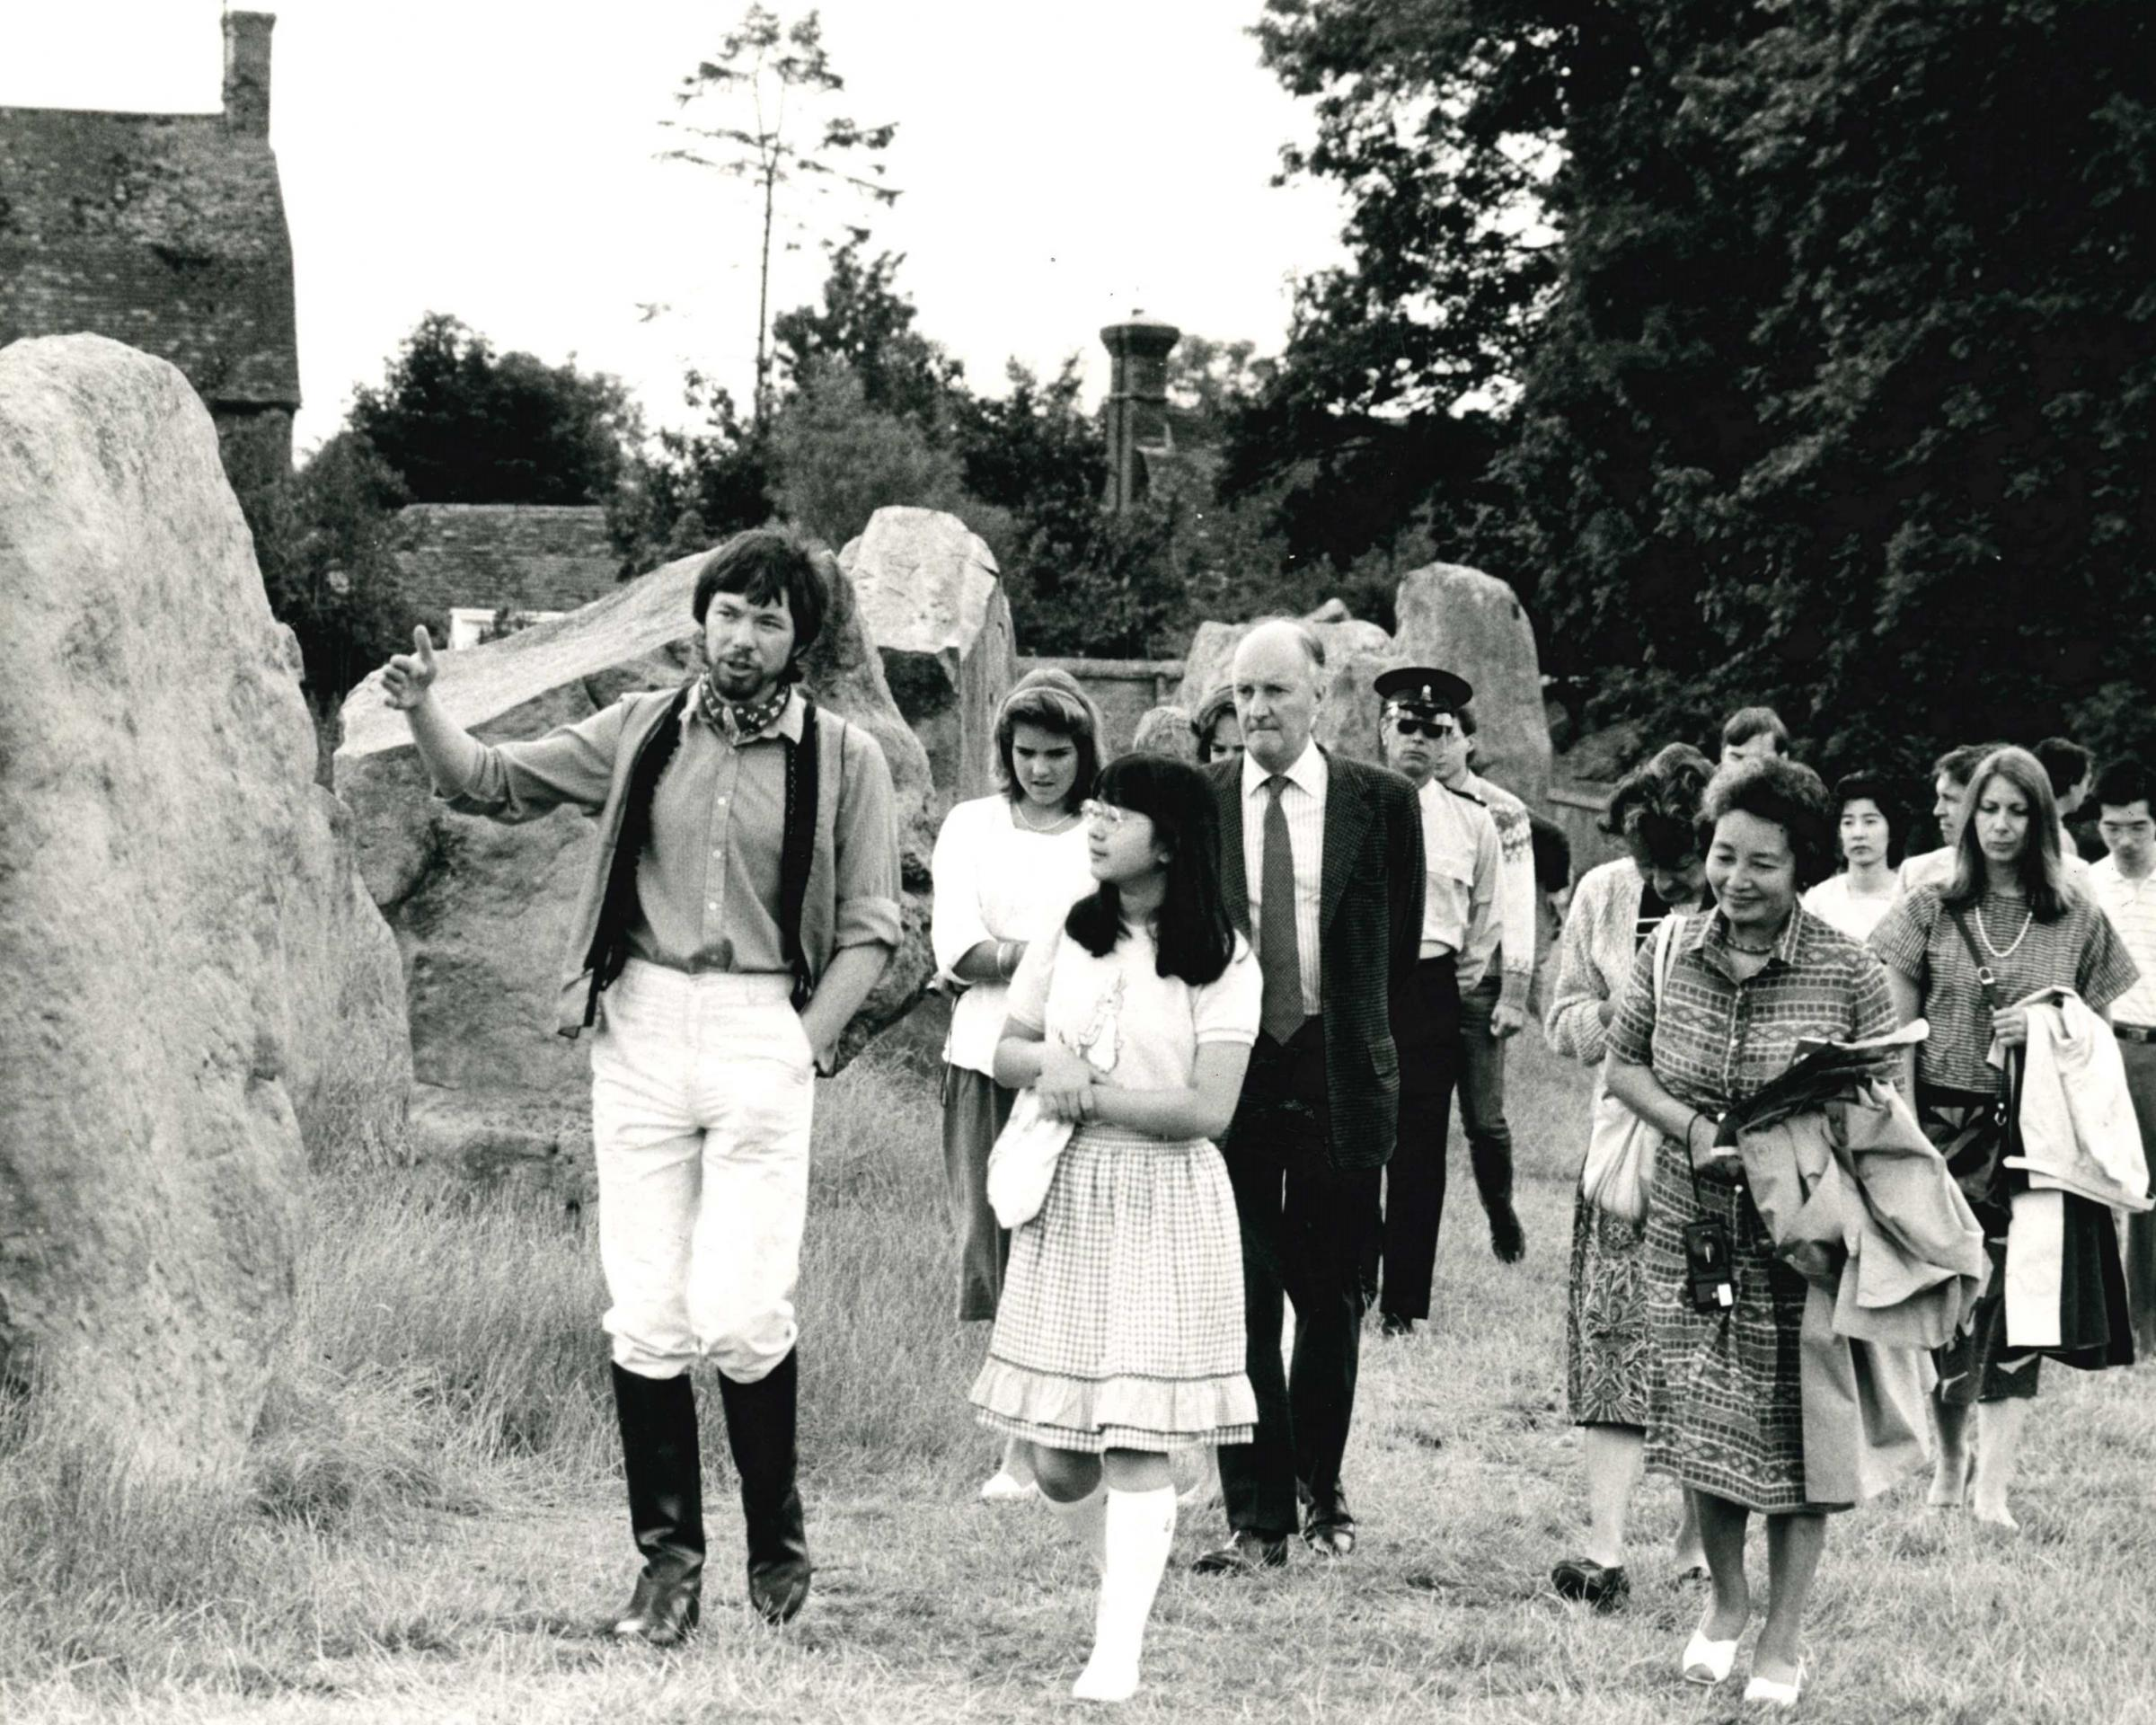 The day a young Japanese princess came to see the Avebury stones